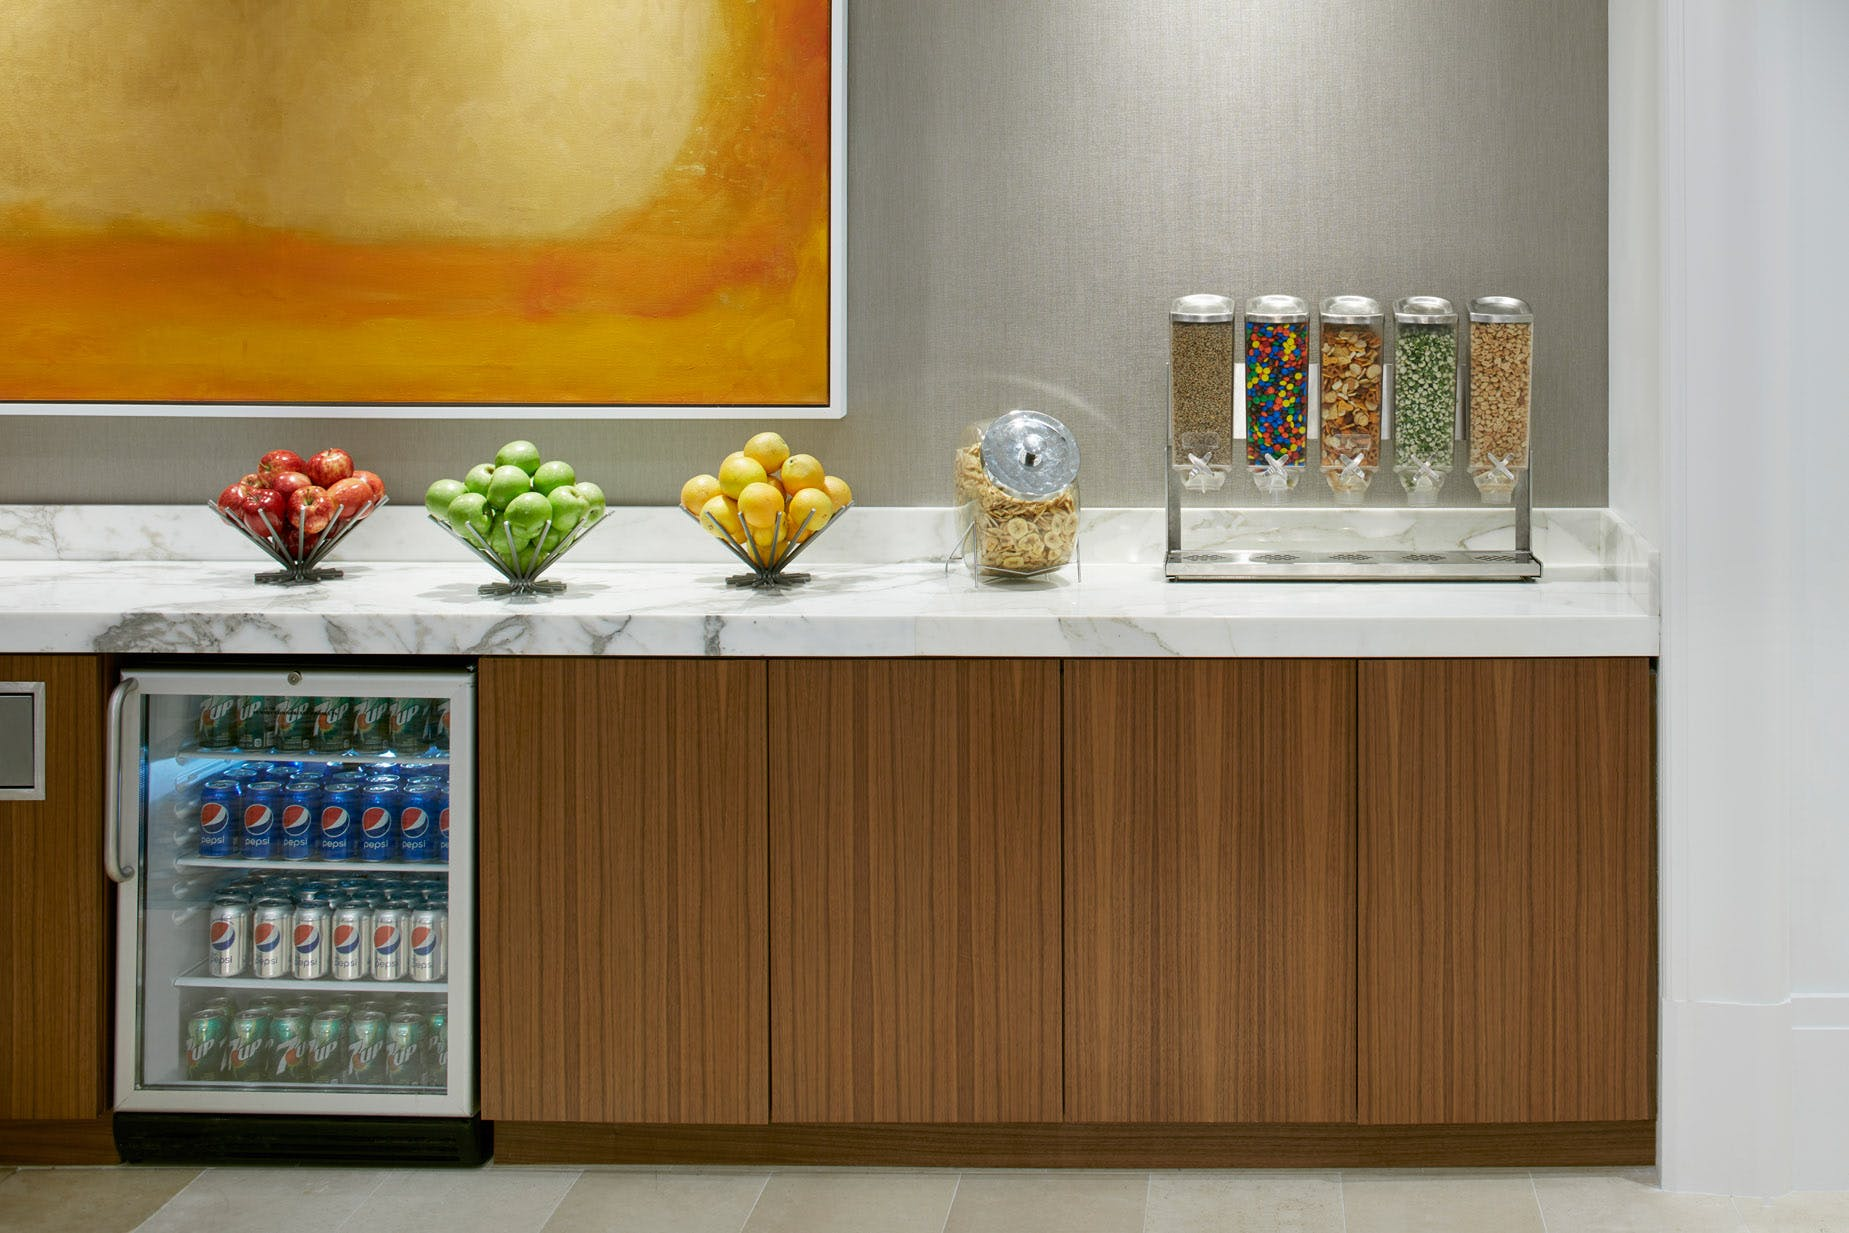 Complimentary Refreshments in the Club Living Room at Club Quarters Hotel in Houston